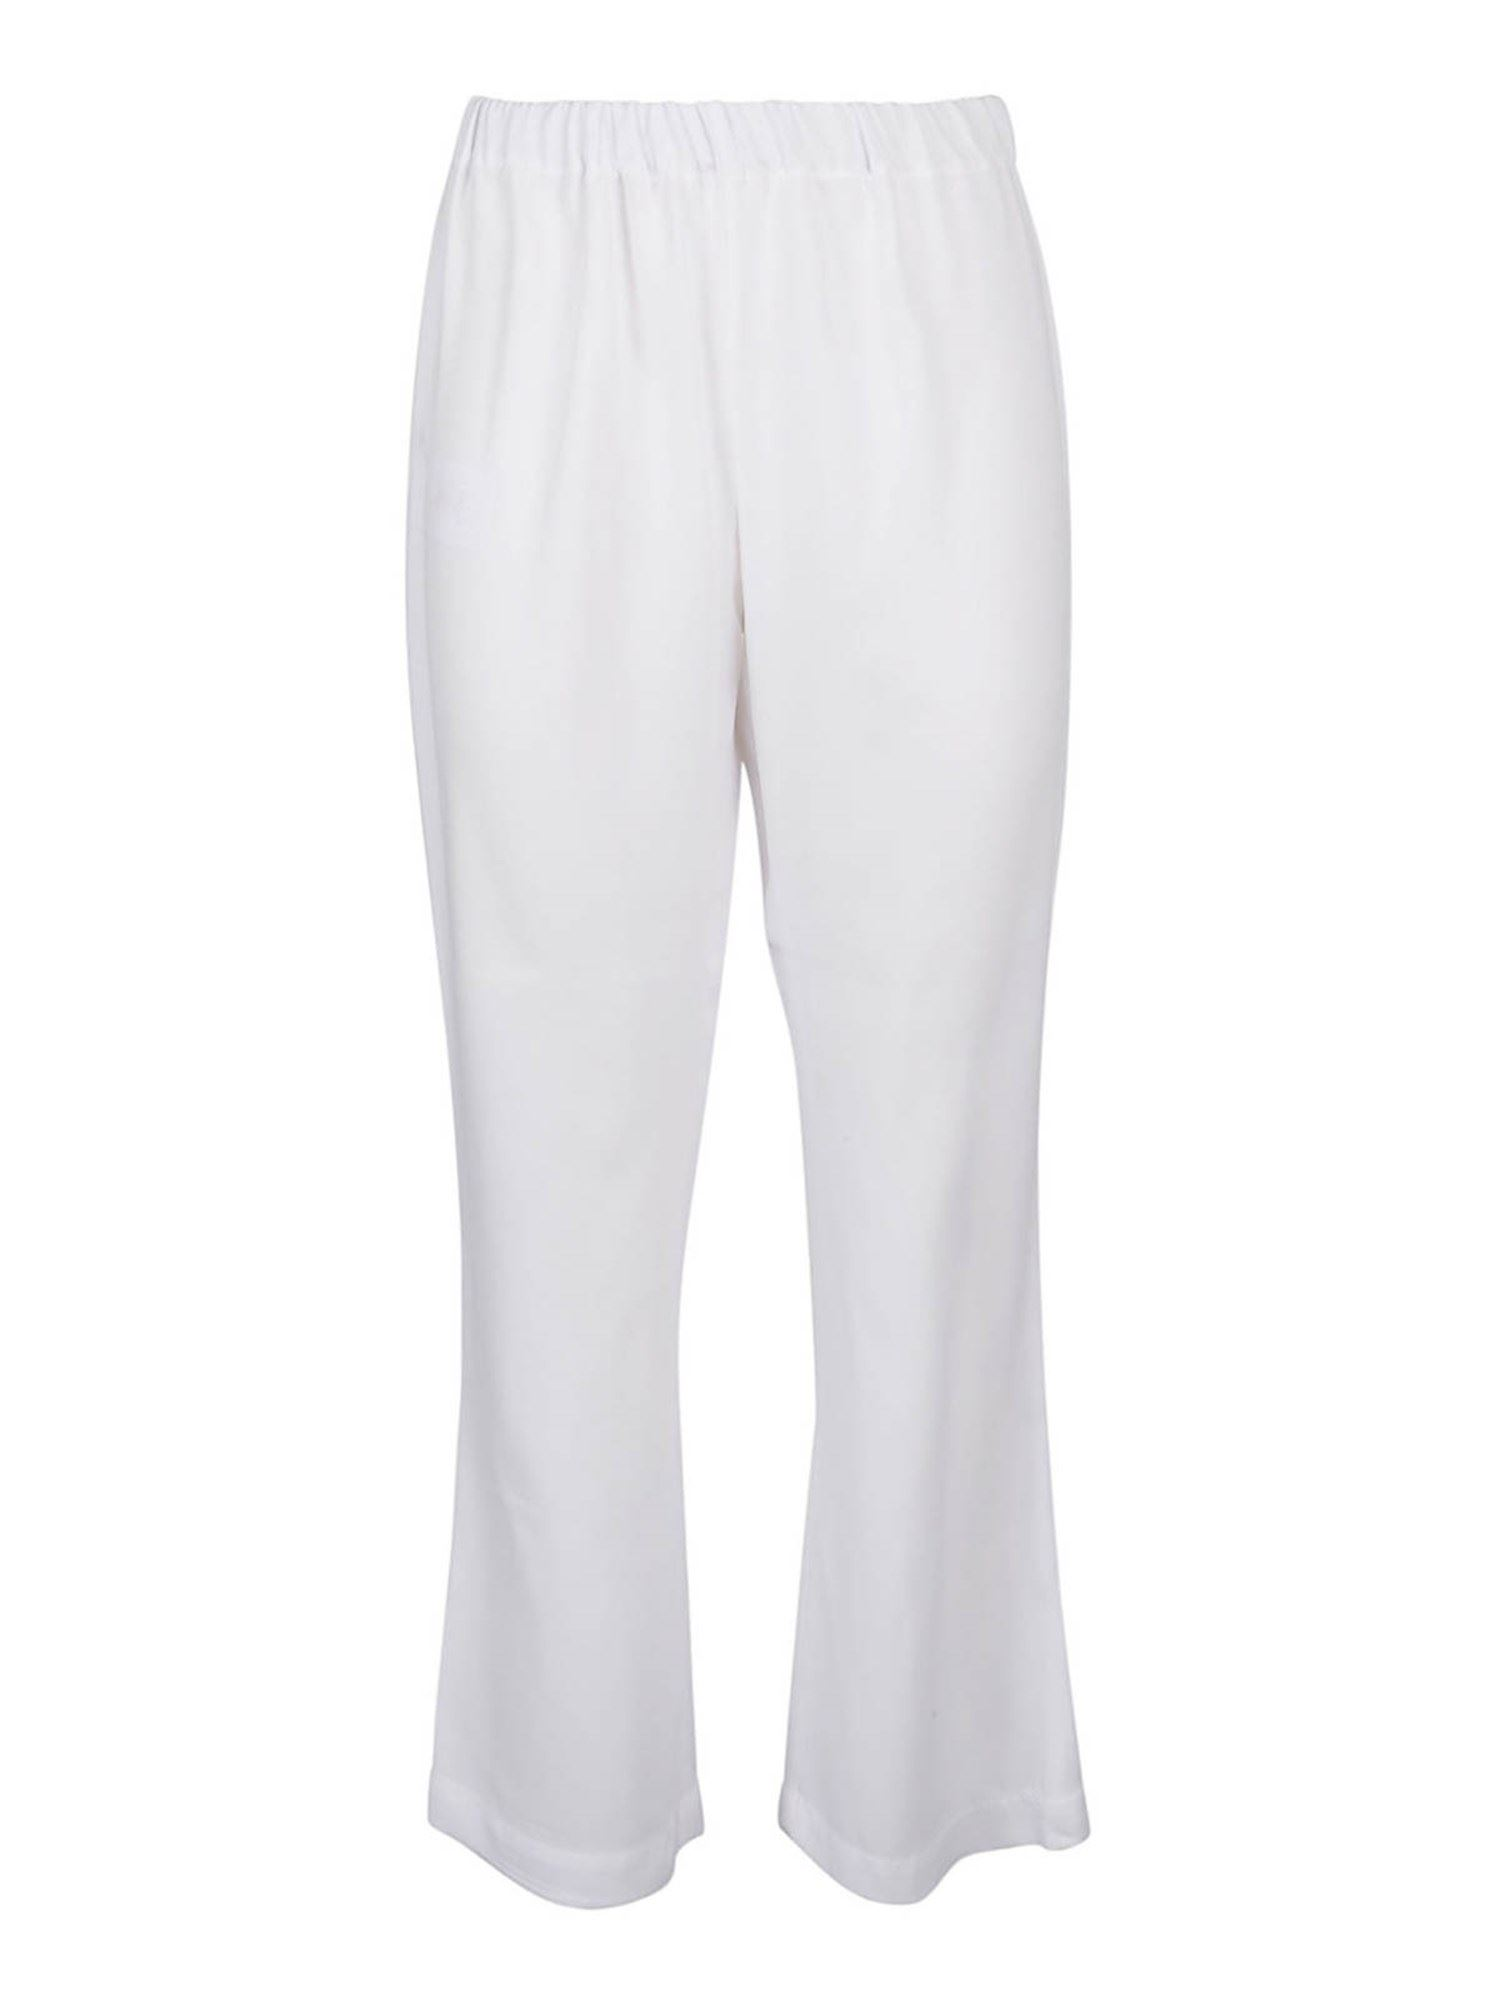 Marni VISCOSE BLEND TROUSERS IN WHITE